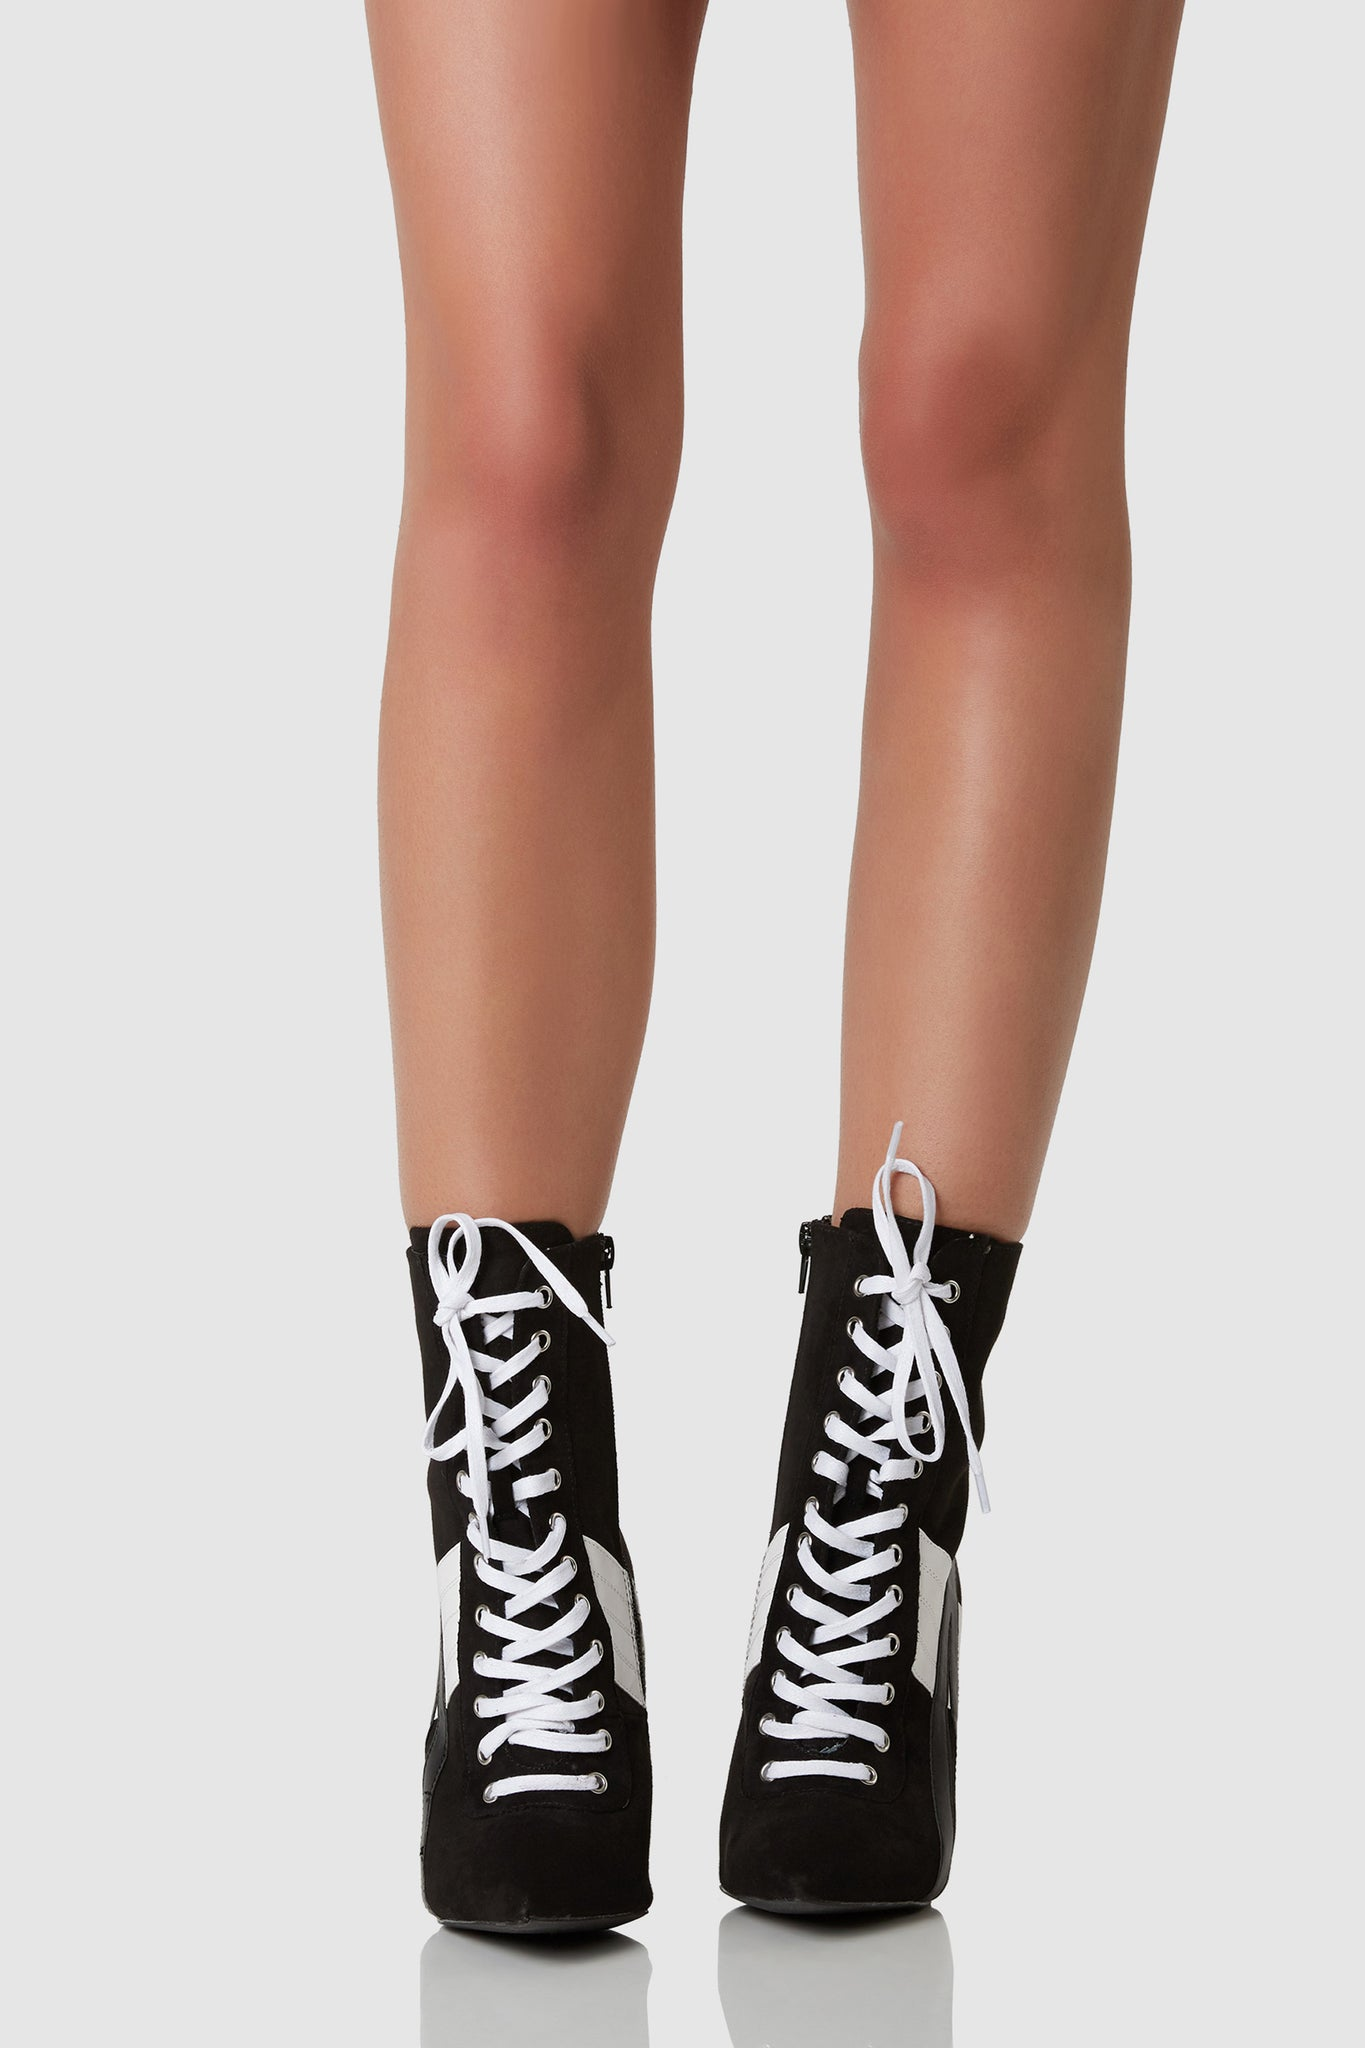 Stylish above the ankle lace up booties with sexy stiletto heels. Pointed toe finish with contrast stripe patterns and lace up finish for an athletic vibe.